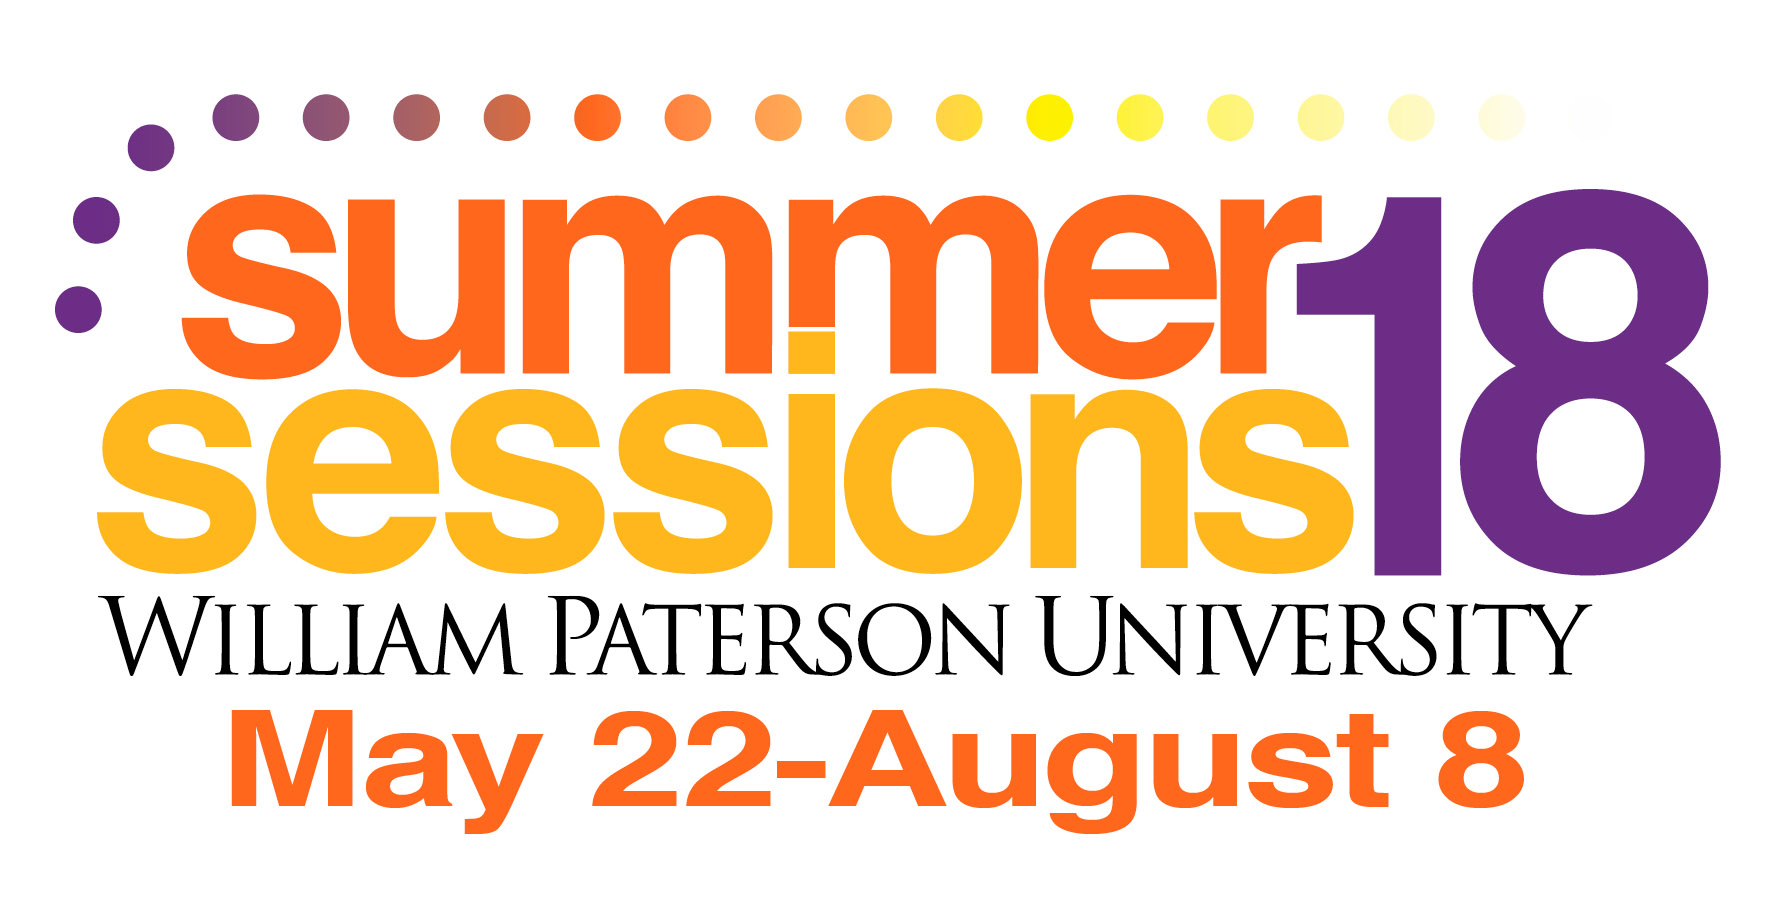 Welcome to Summer Session - William Paterson University